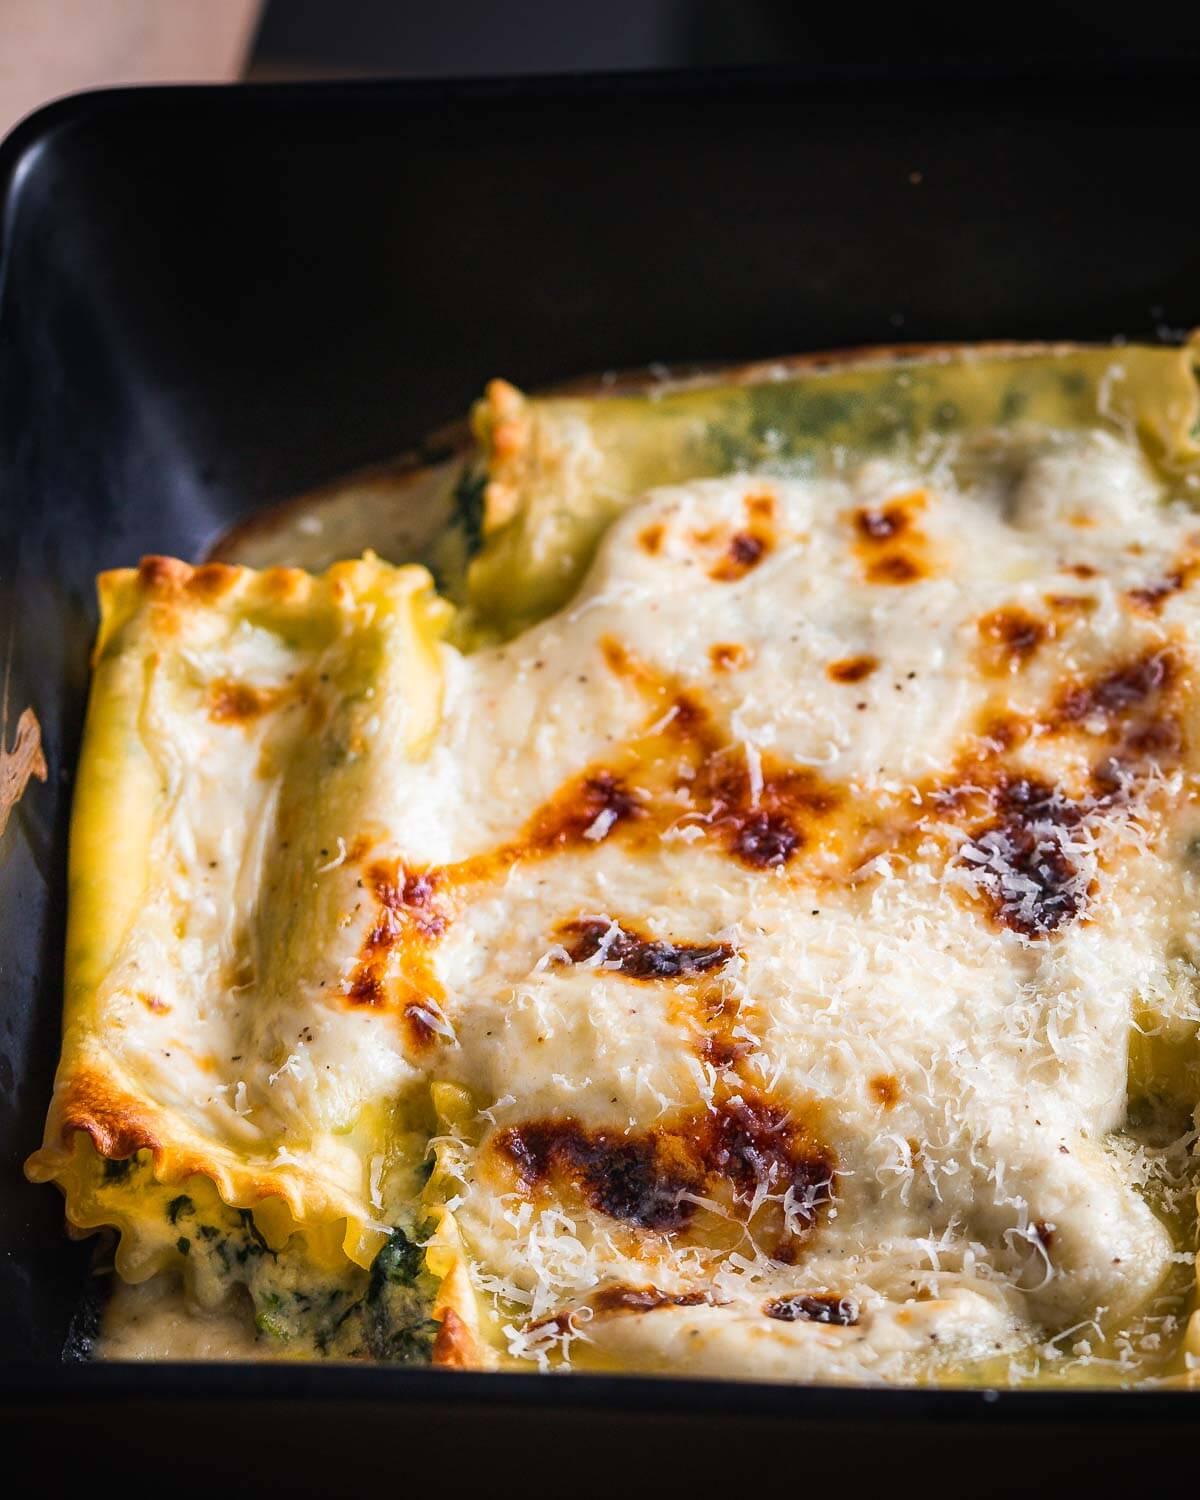 Spinach lasagna rolls with white sauce in black baking dish.